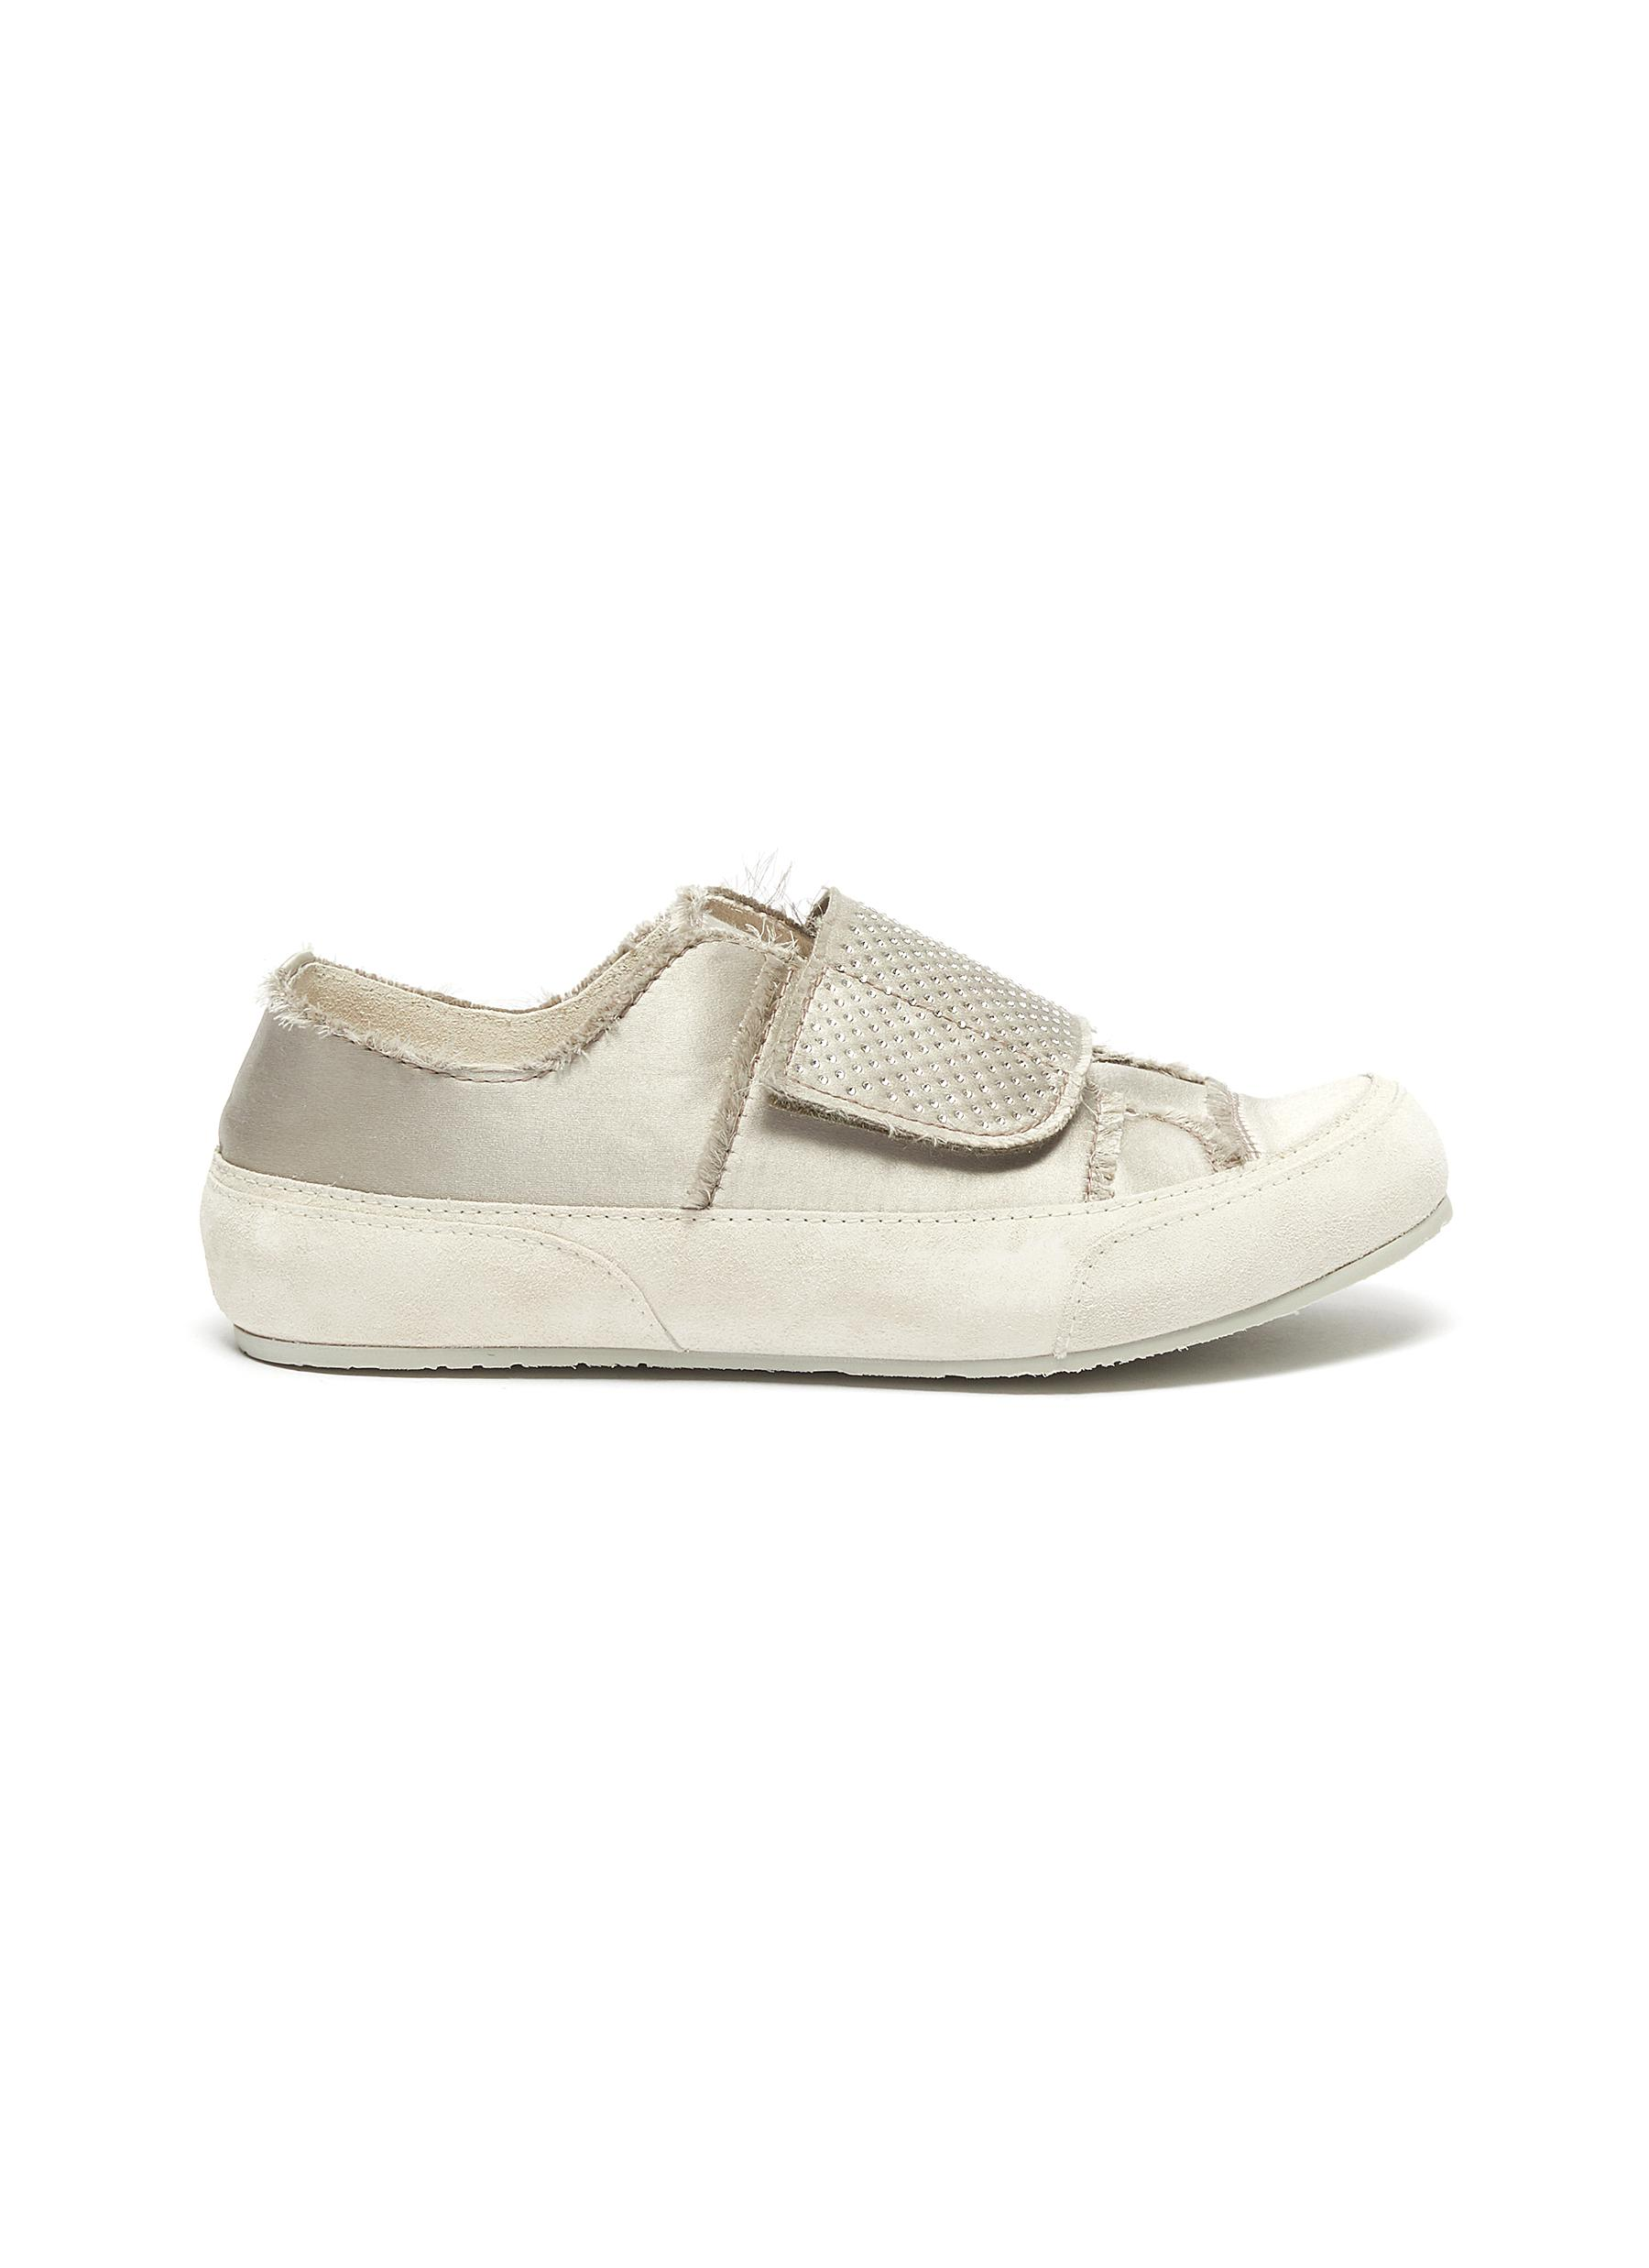 Pedro García Sneakers Pailie crystal embellished frayed stitch silk sneakers